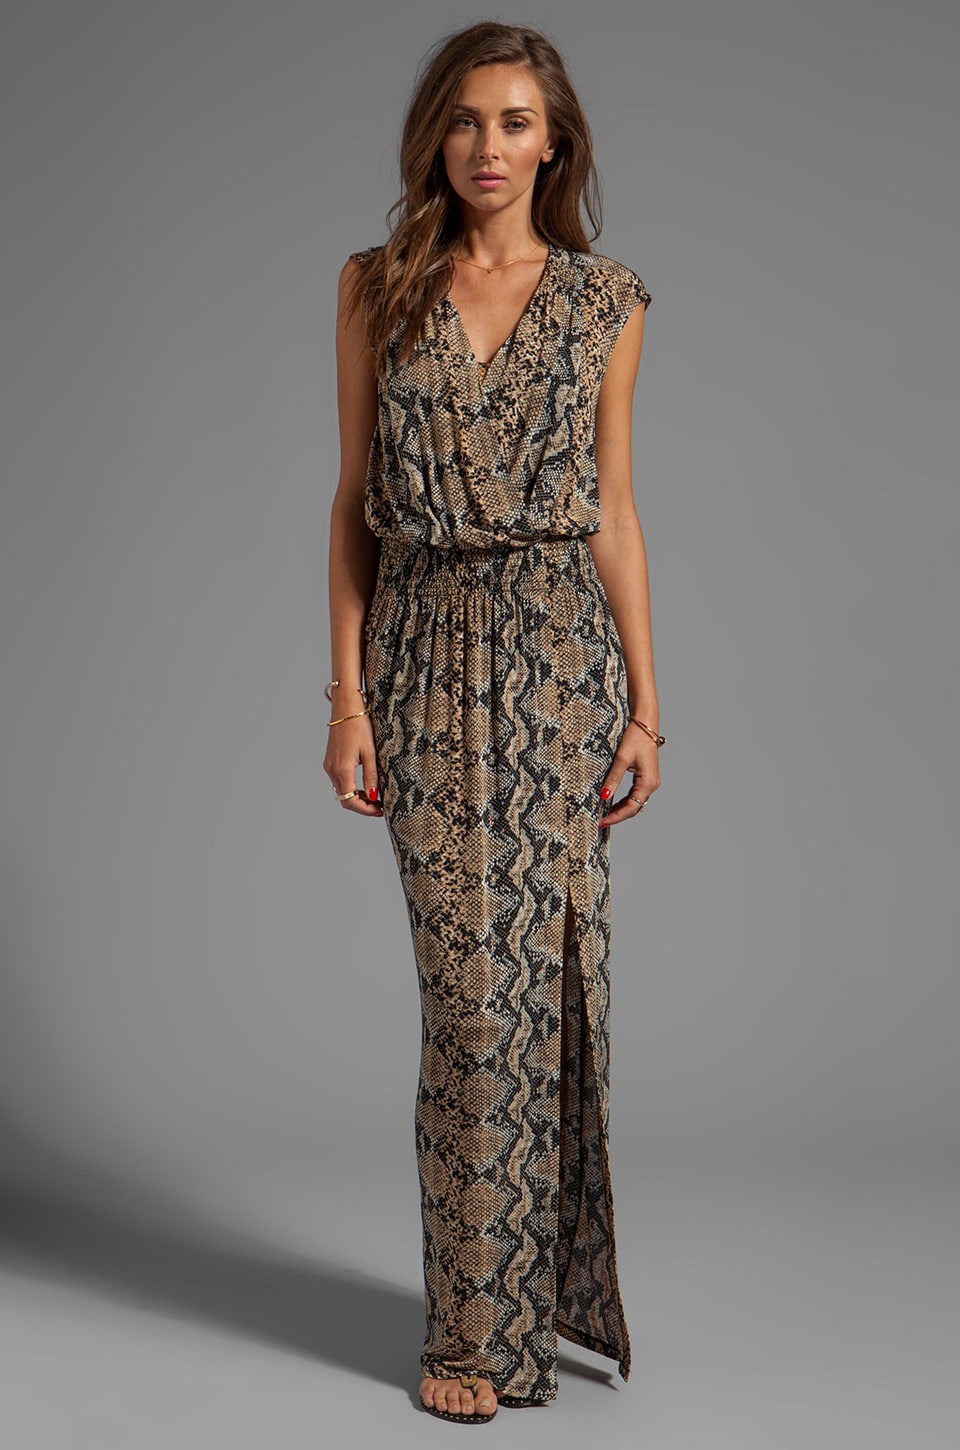 Tracy Reese Printed Jersey Maxi Surplice in Neutral Python